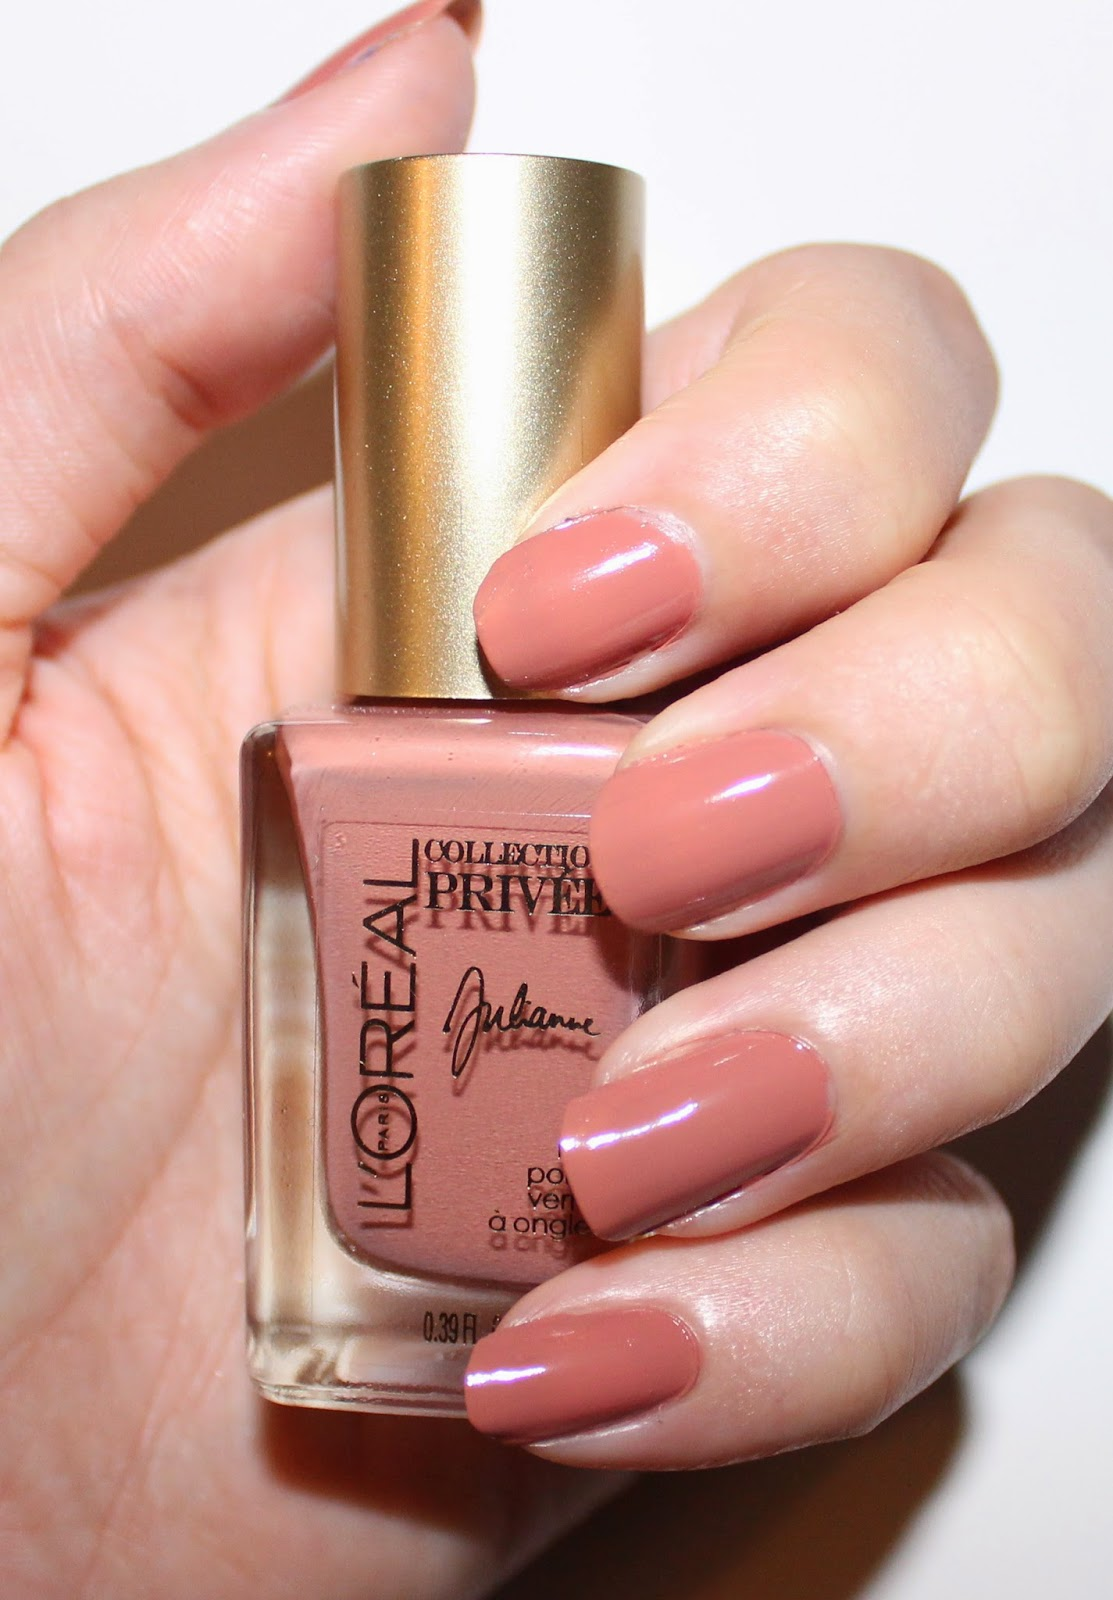 L'Oréal Collection Privée Exclusive Nudes Nail Polishes Julianne